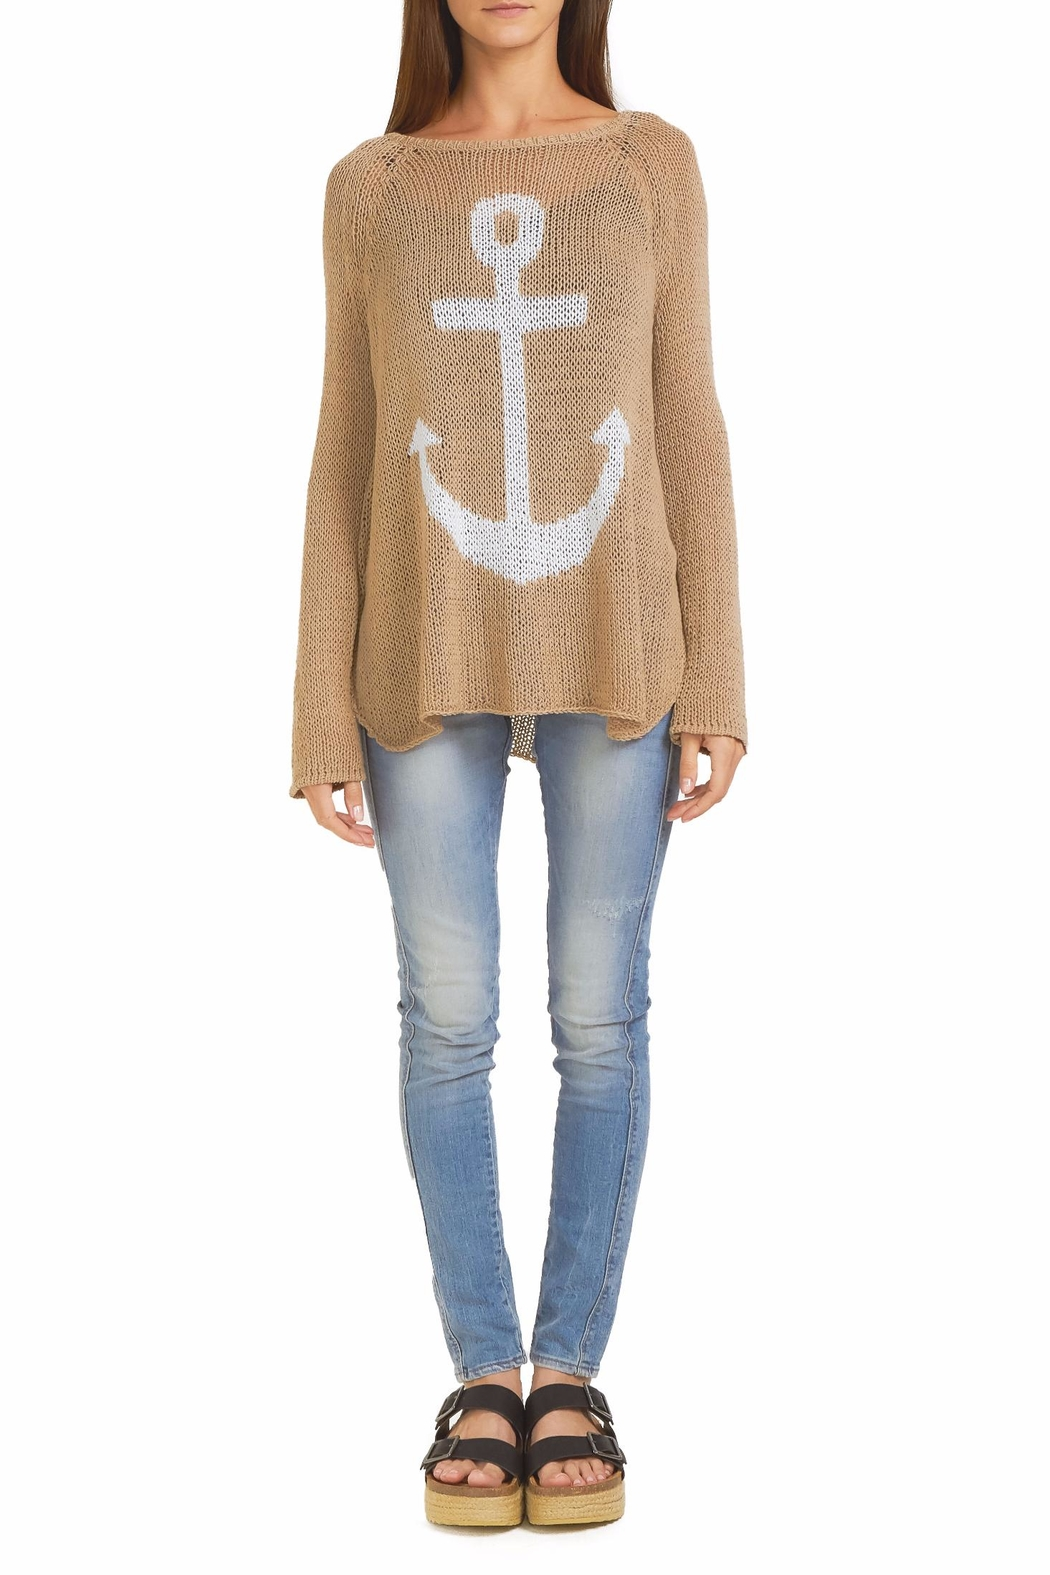 Wooden Ships Anchor Raglan Sweater Top - Front Cropped Image